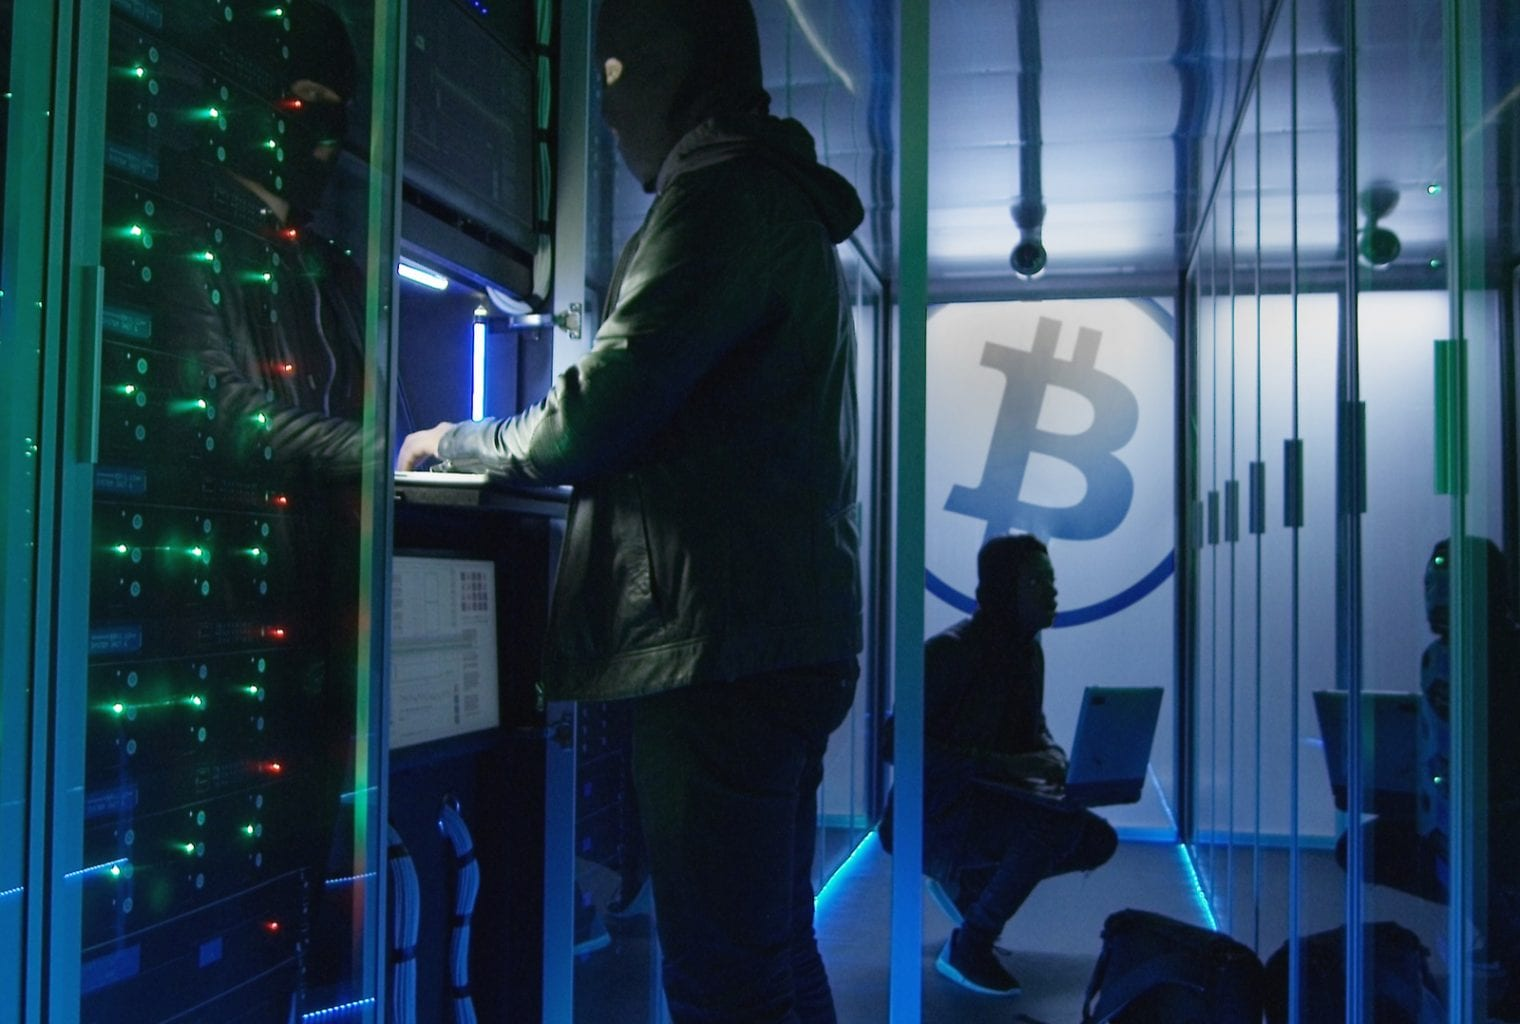 Hackers Have Looted More Bitcoin Than Satoshi's Entire Stash